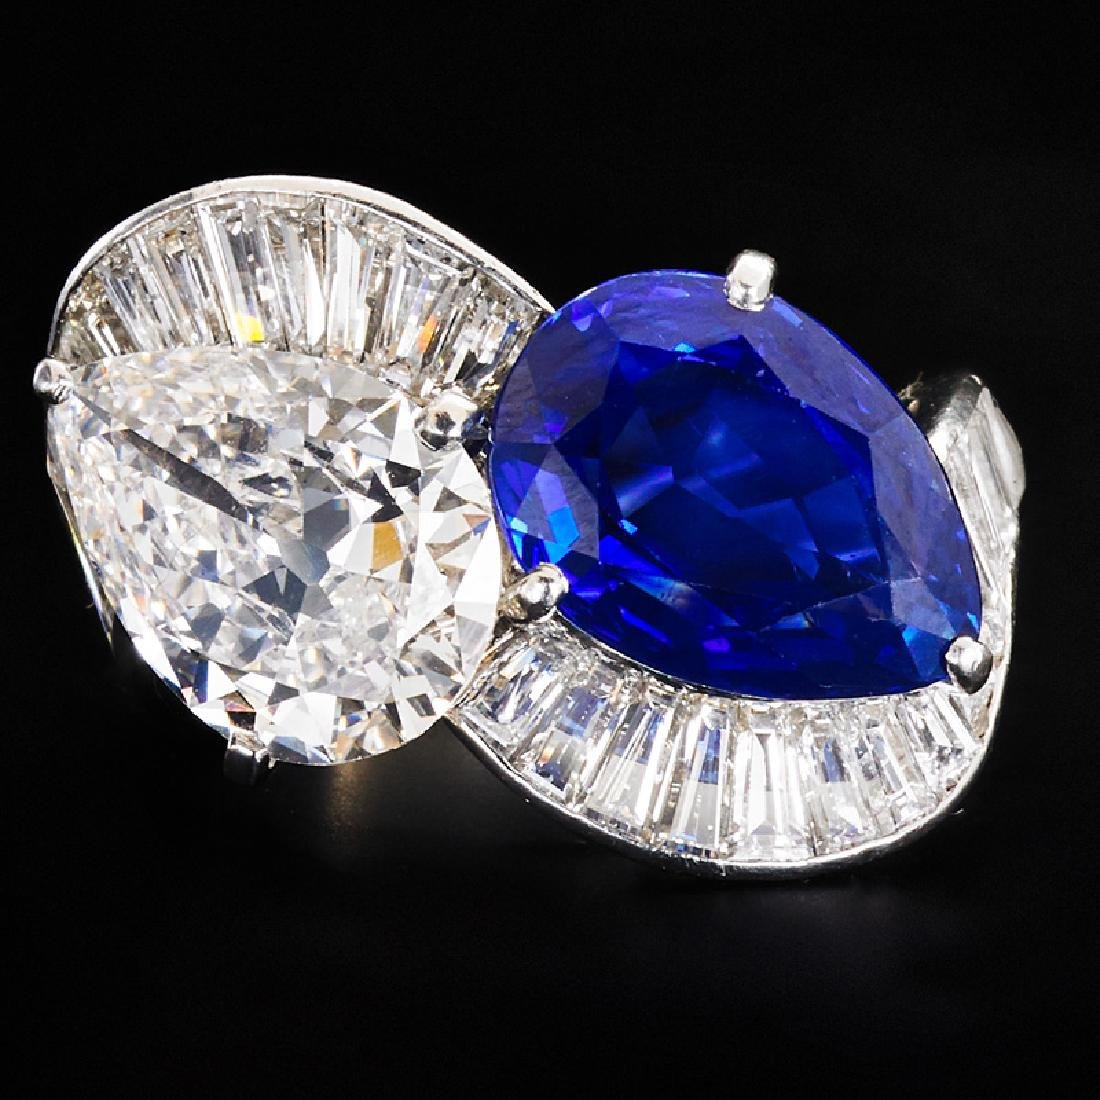 5.10 CTS UNTREATED KASHMIR SAPPHIRE & DIAMOND RING